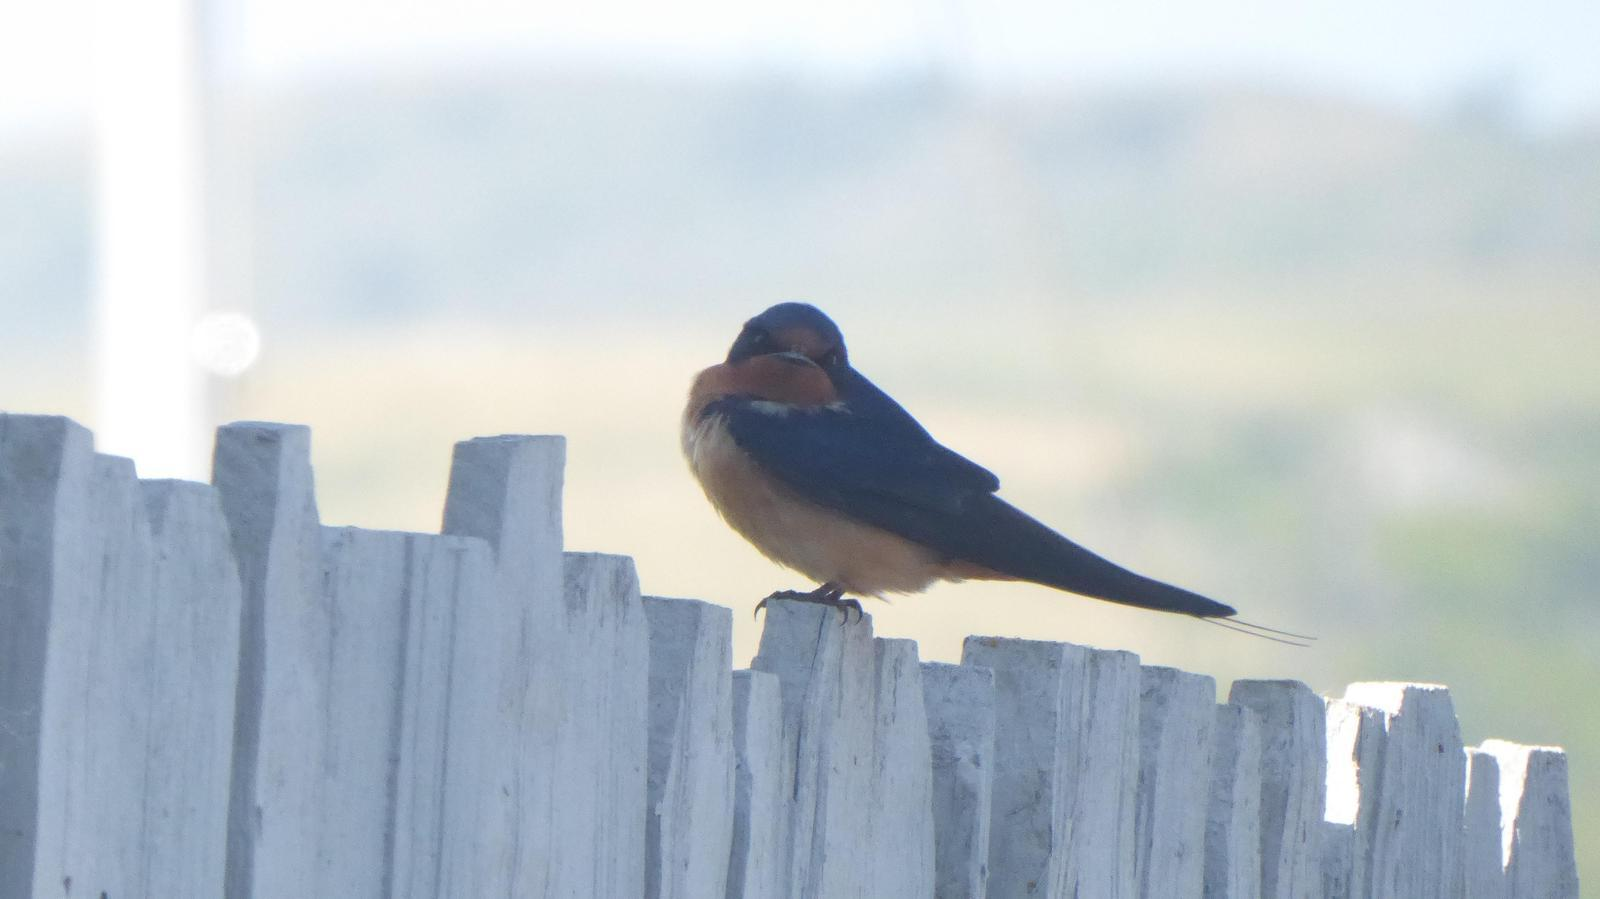 Barn Swallow Photo by Daliel Leite